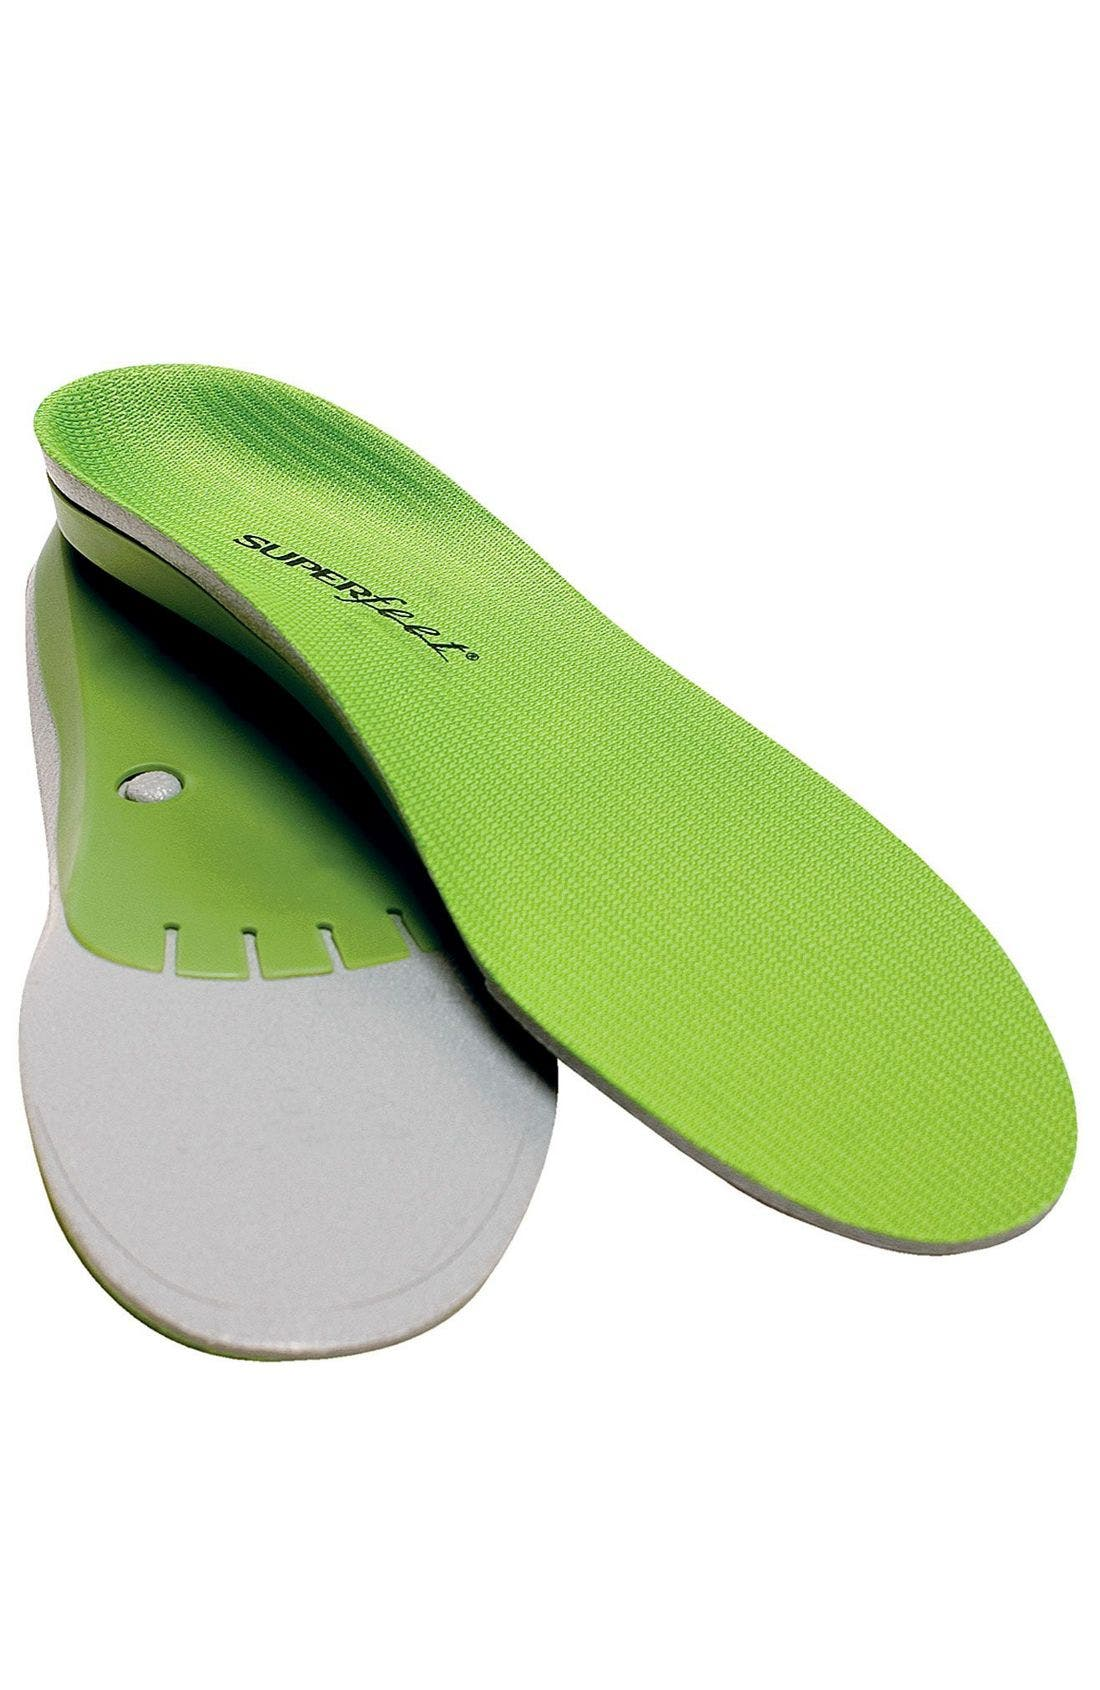 Alternate Image 1 Selected - Superfeet Performance Green Full Length Insoles (Men)